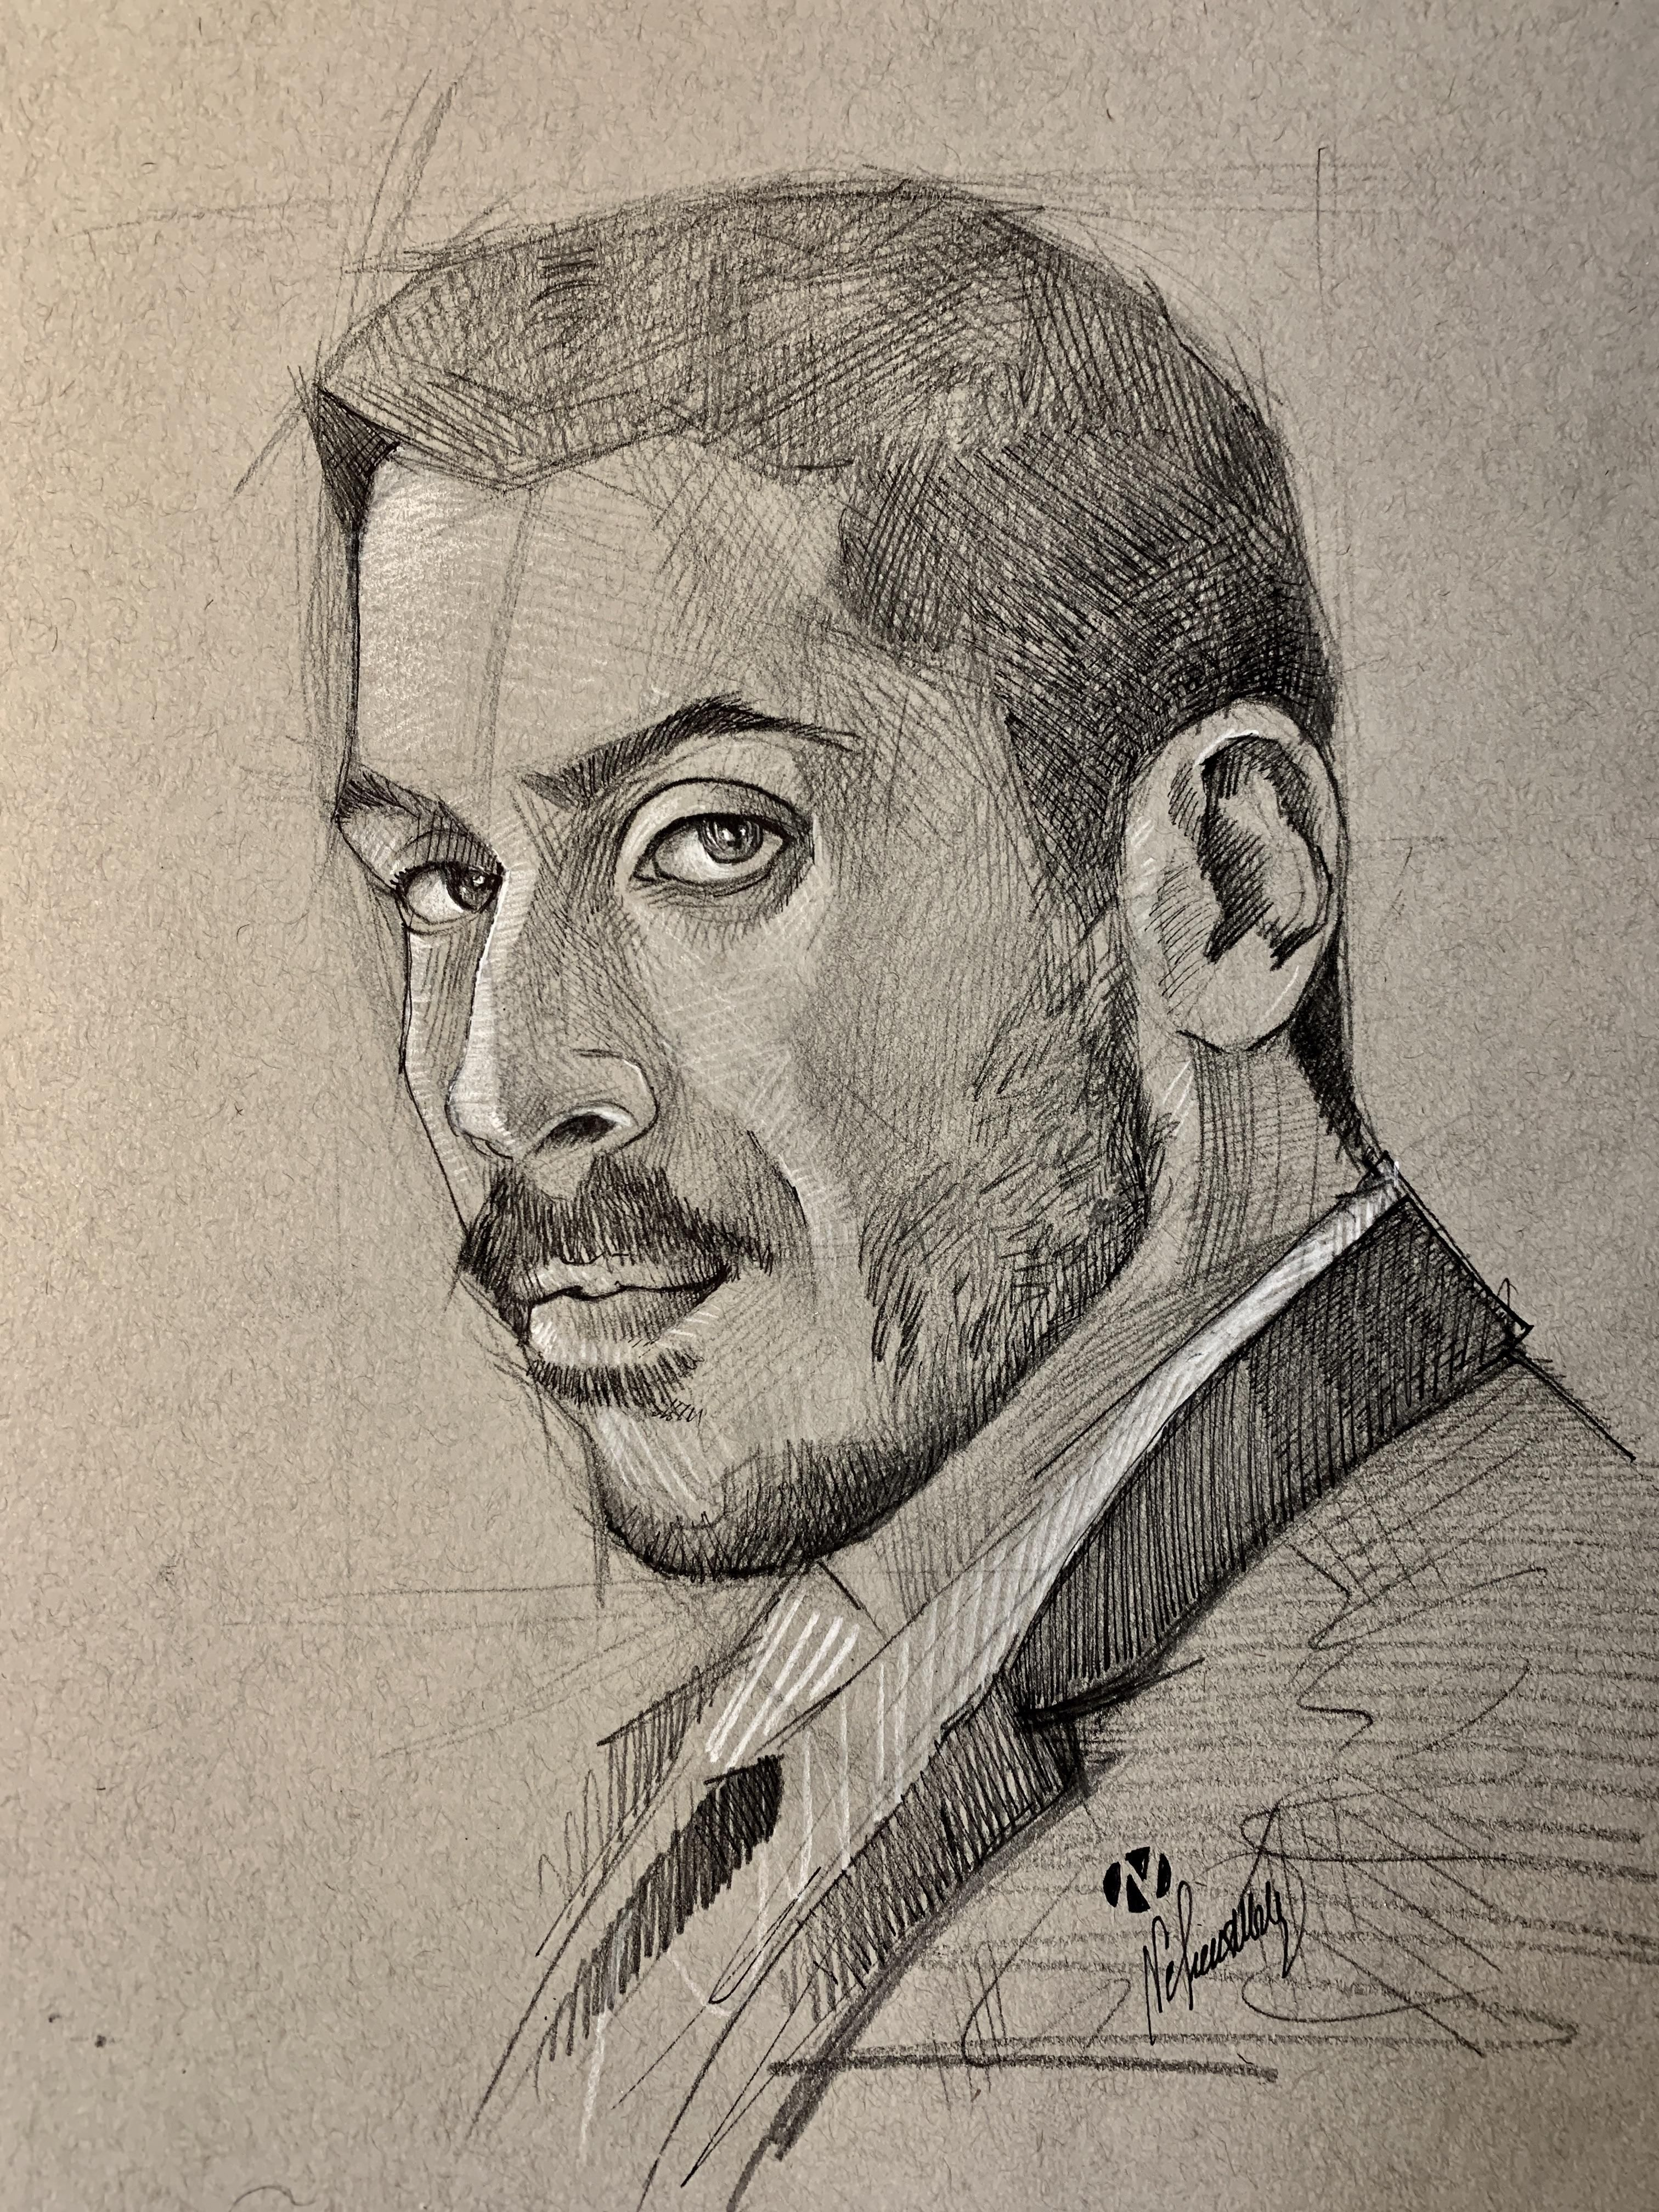 Kobi Marimi Eurovision 2019 Israels Representative Star With An Unusually Stunning Performance Of Home Nickmoscovitz Eurovision Drawings Pencil Drawings